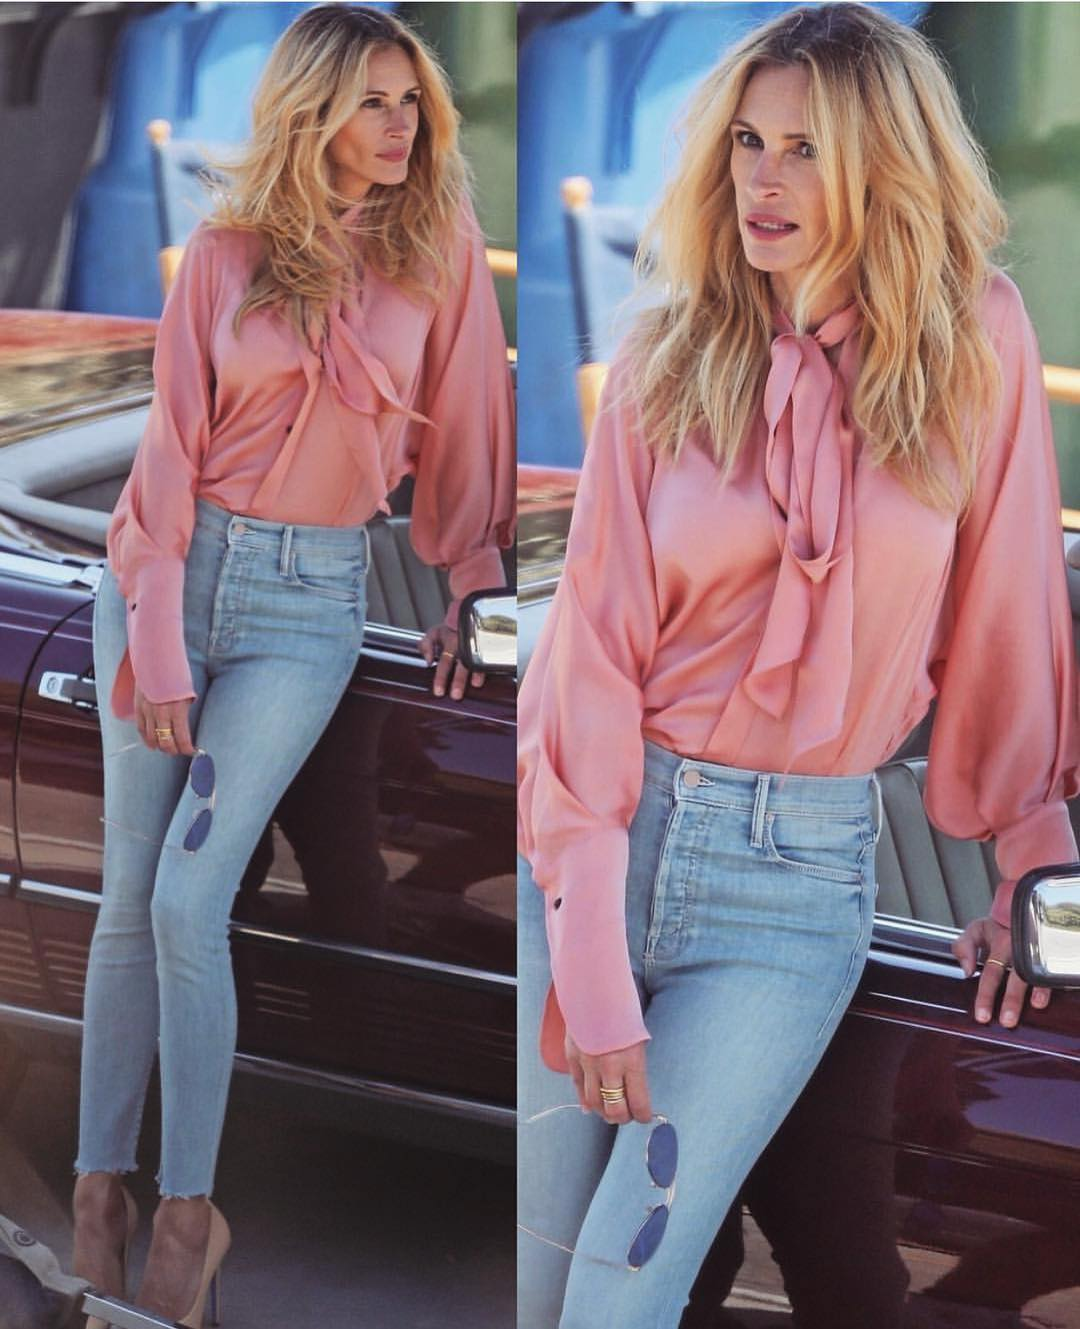 1970 Street Style: Pink Blouse With A Bow And Wash Blue Skinny Jeans 2019